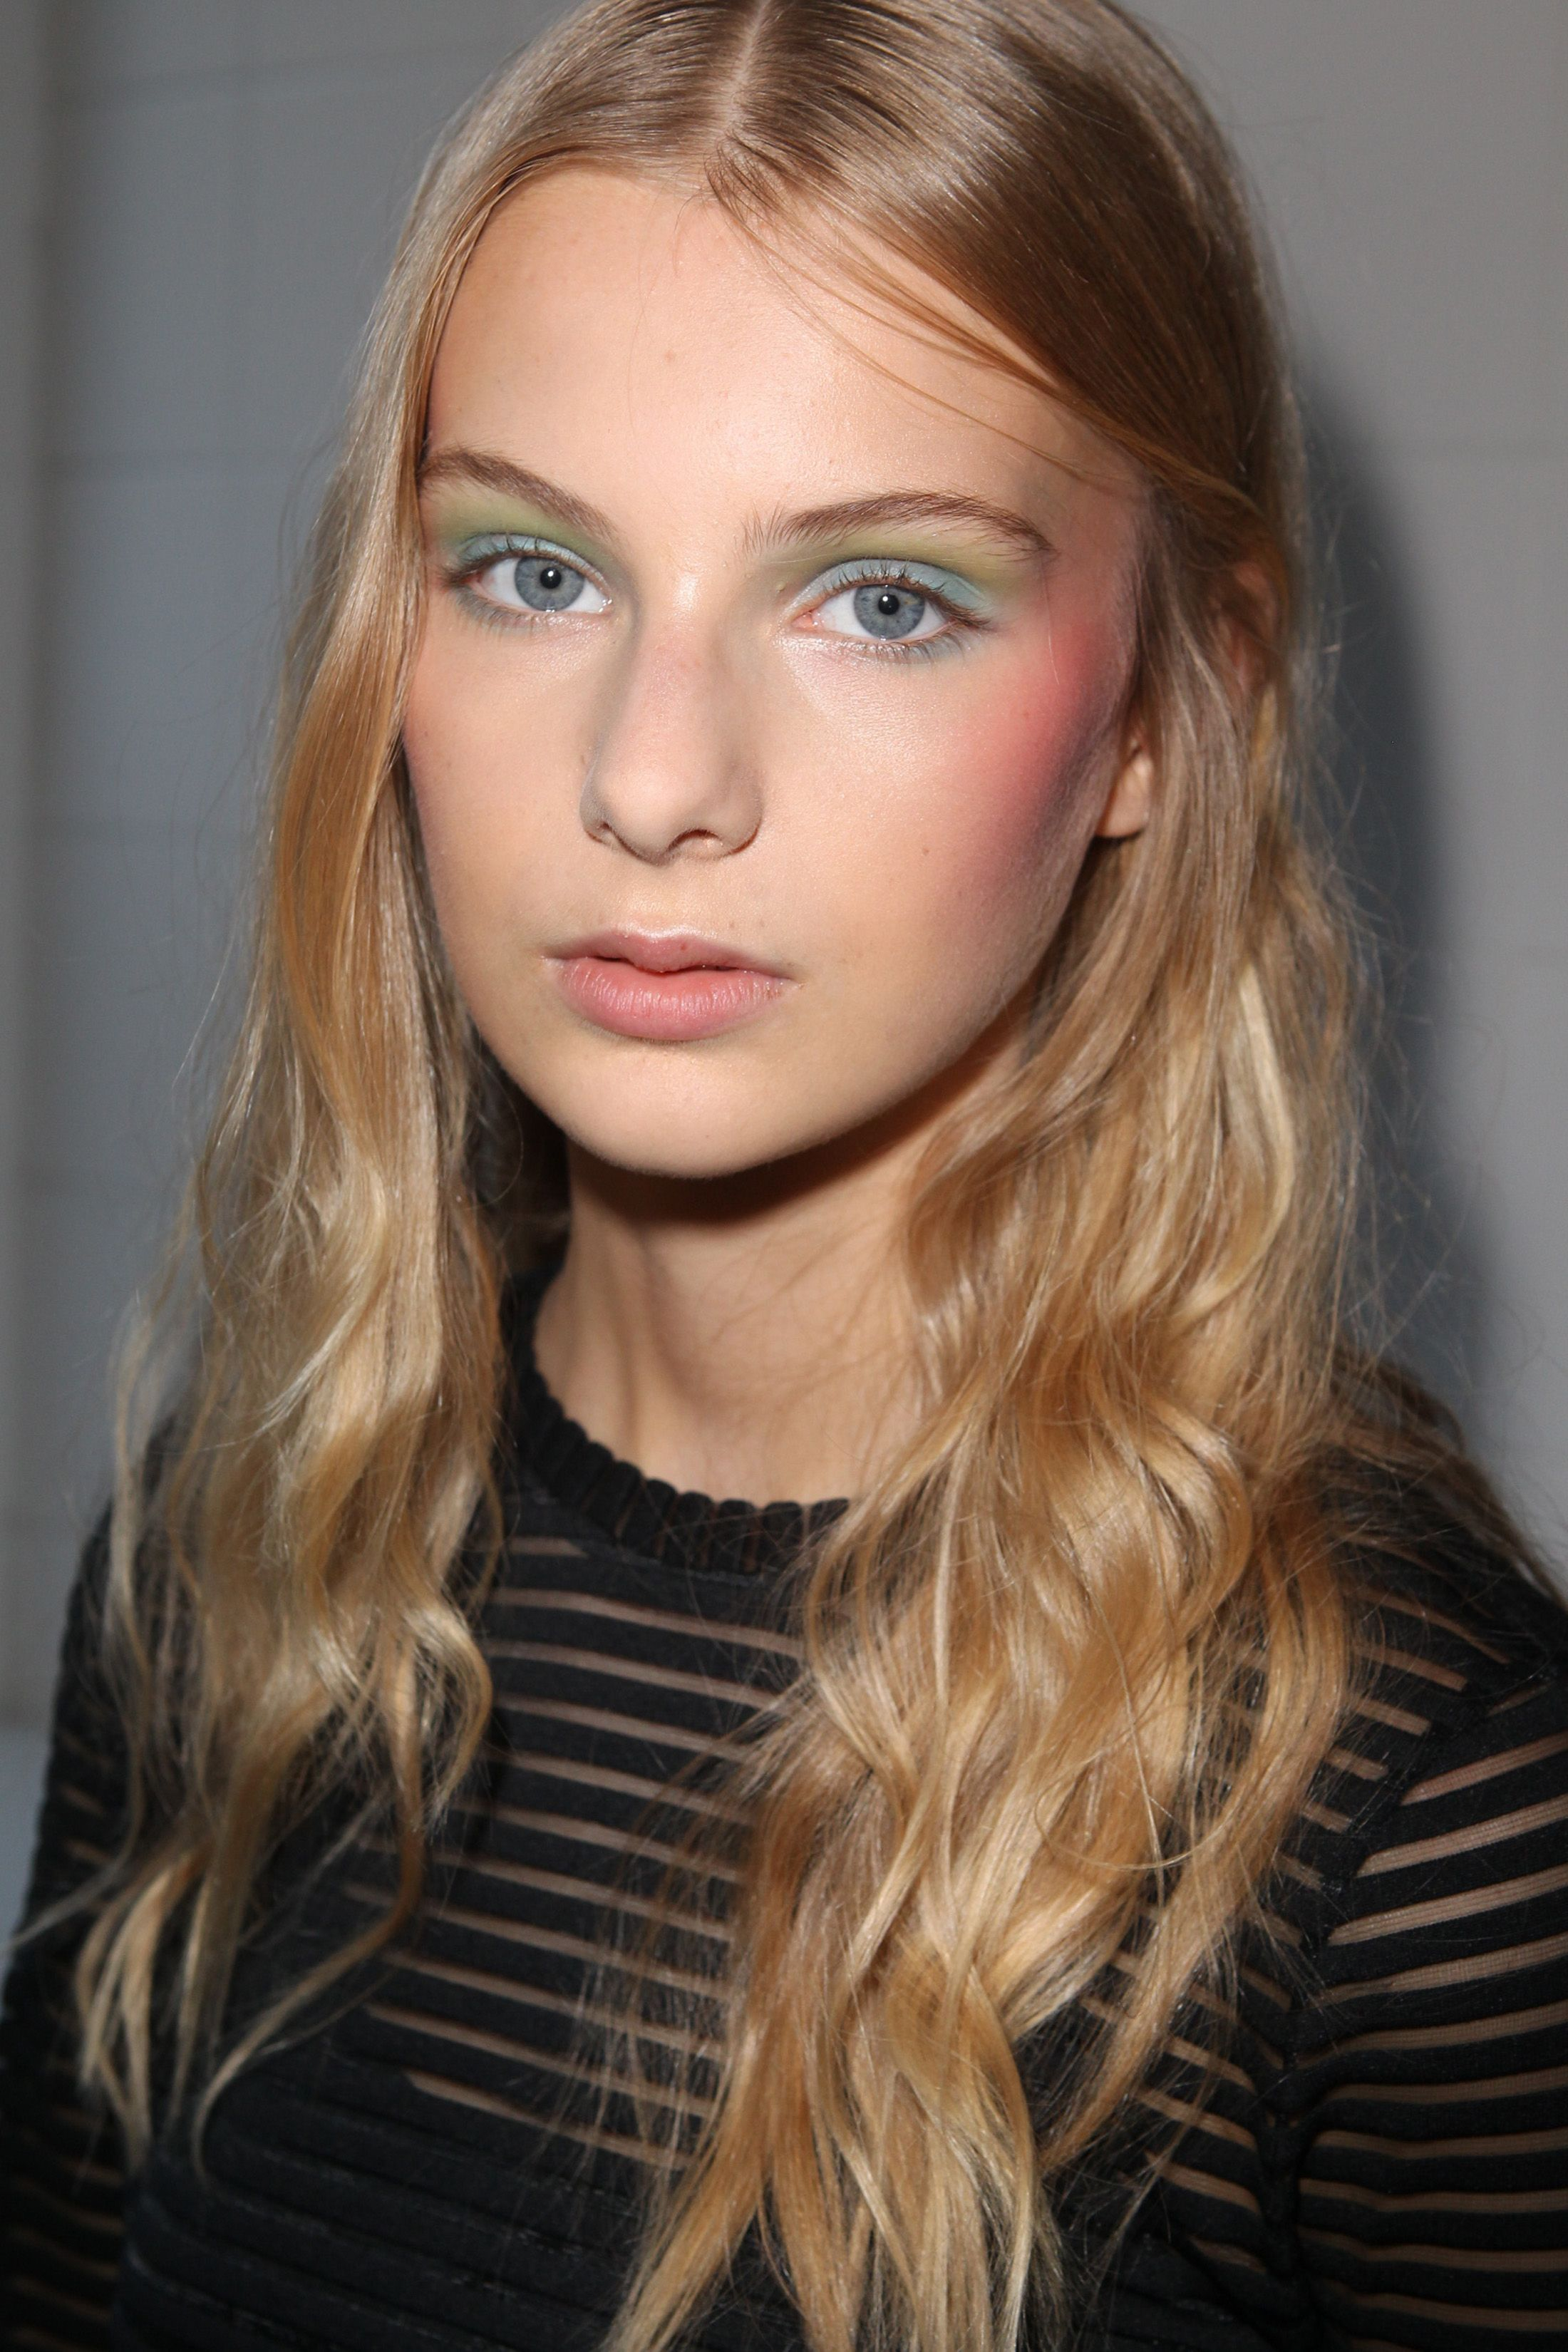 """""""70s tropical eyes"""" were created by makeup artist Lloyd Simmonds at Alexis Mabille in Paris. MAC Pro Paint Sticks in Hi-Def Cyan and Primary Yellow were applied in stripes, with a mixture of the two in the middle. The cheeks were a colourful affair, too, with a wash of blush high up on the cheekbones. - Cosmopolitan.co.uk"""